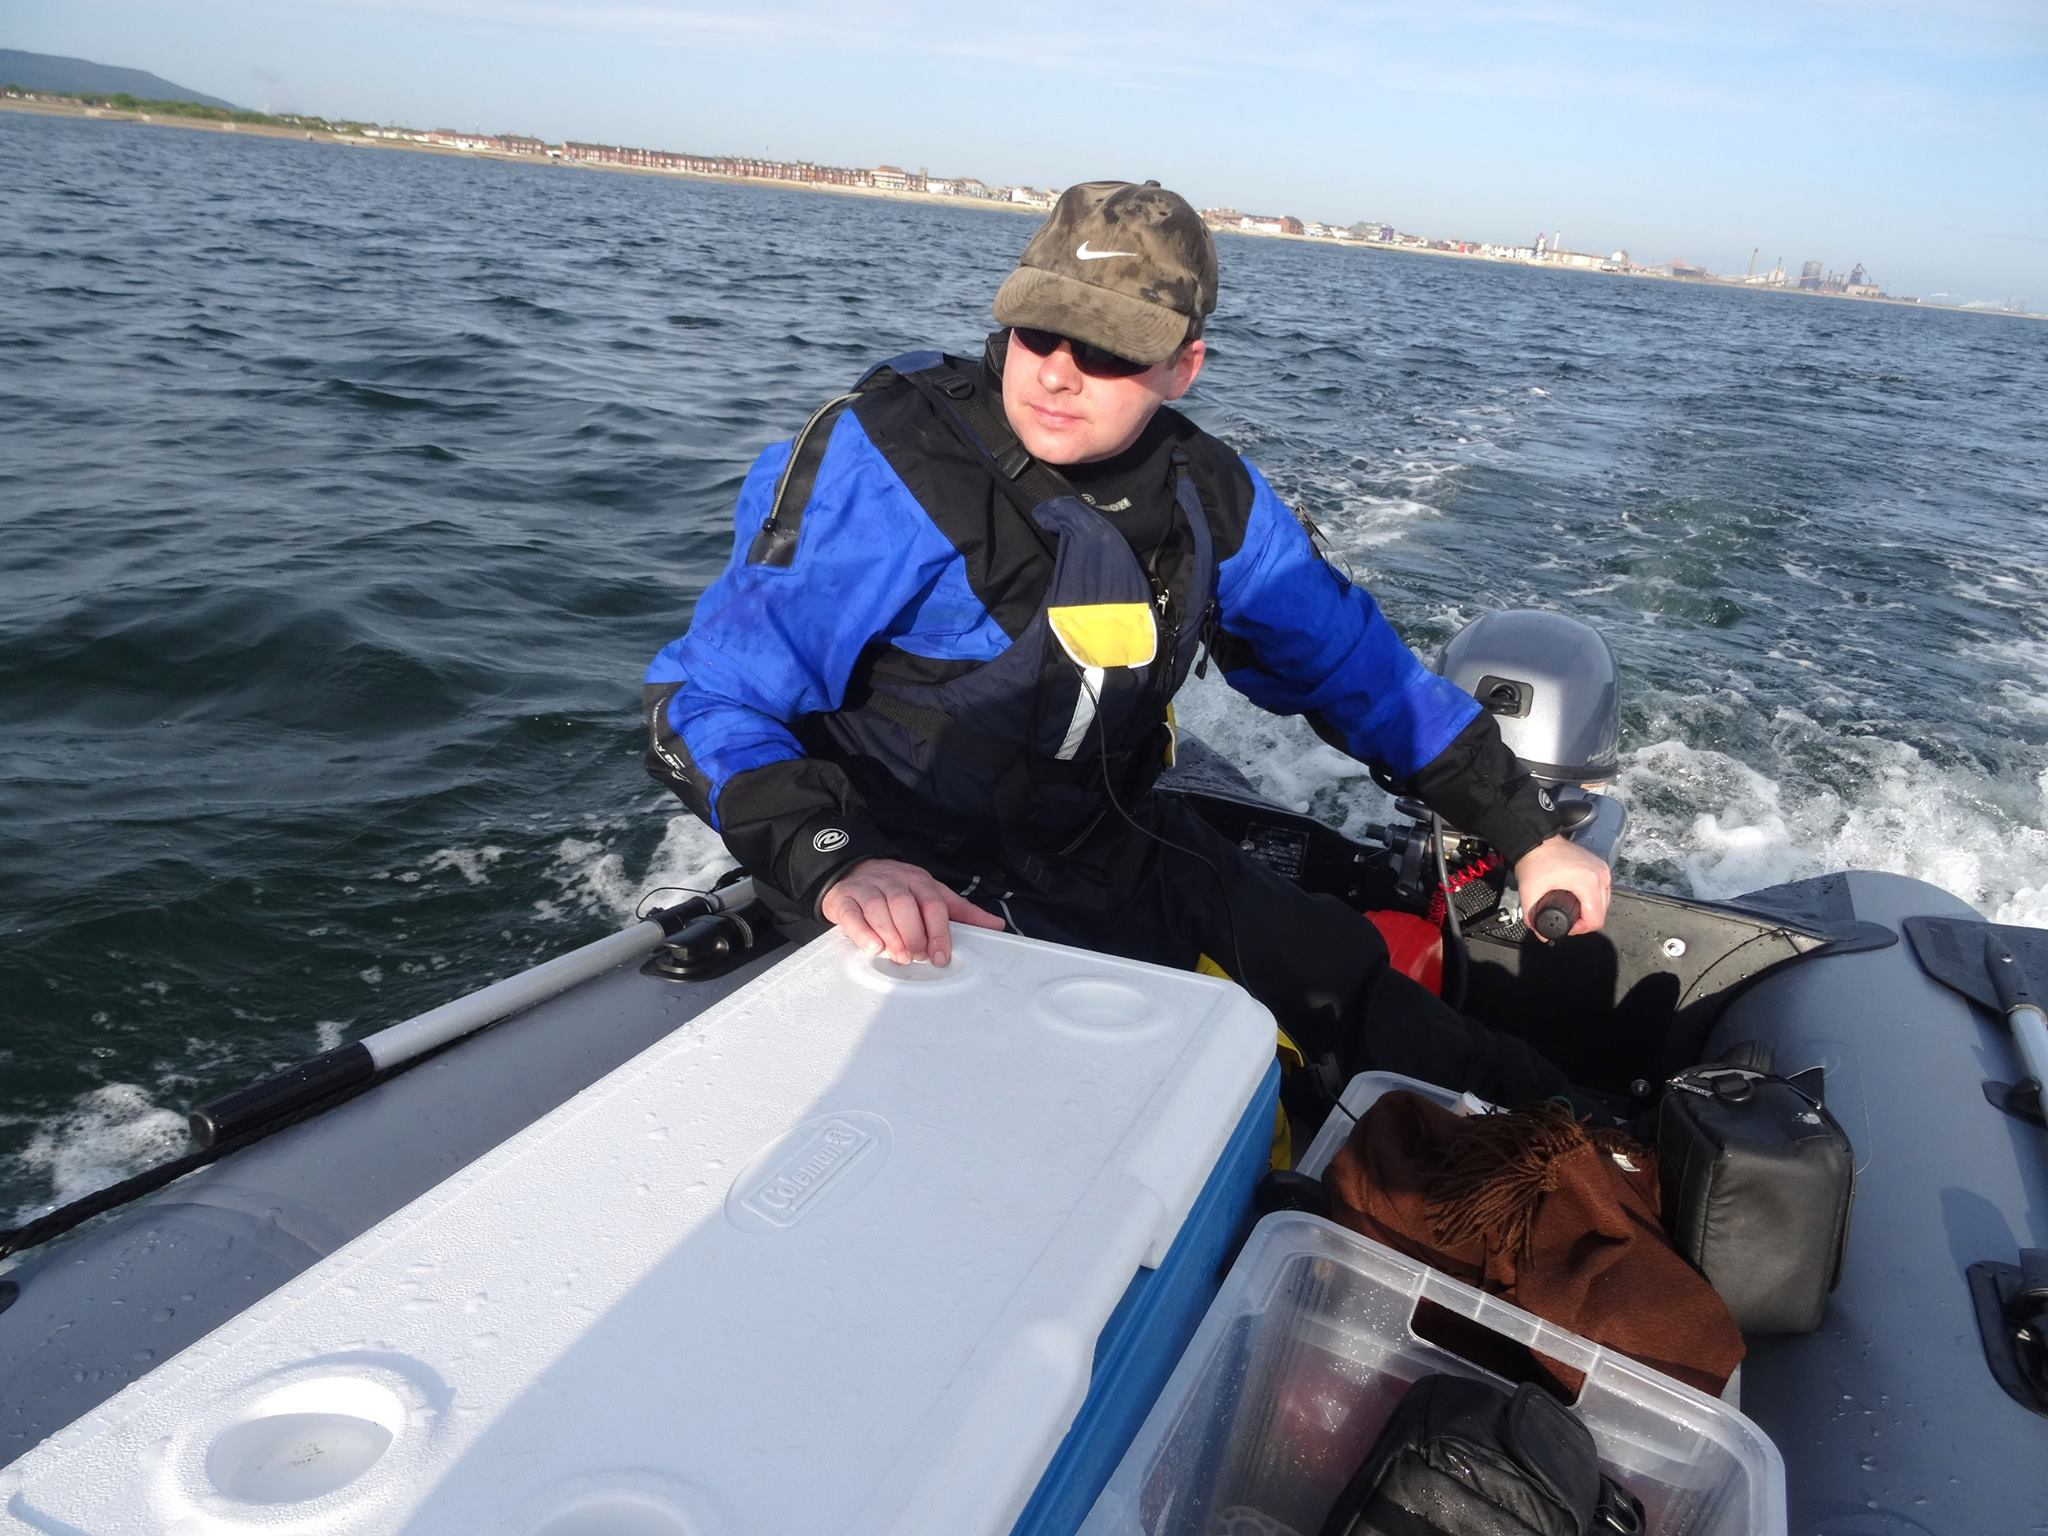 Running in the Yamaha 9.9 HP 4 Stroke Outboard